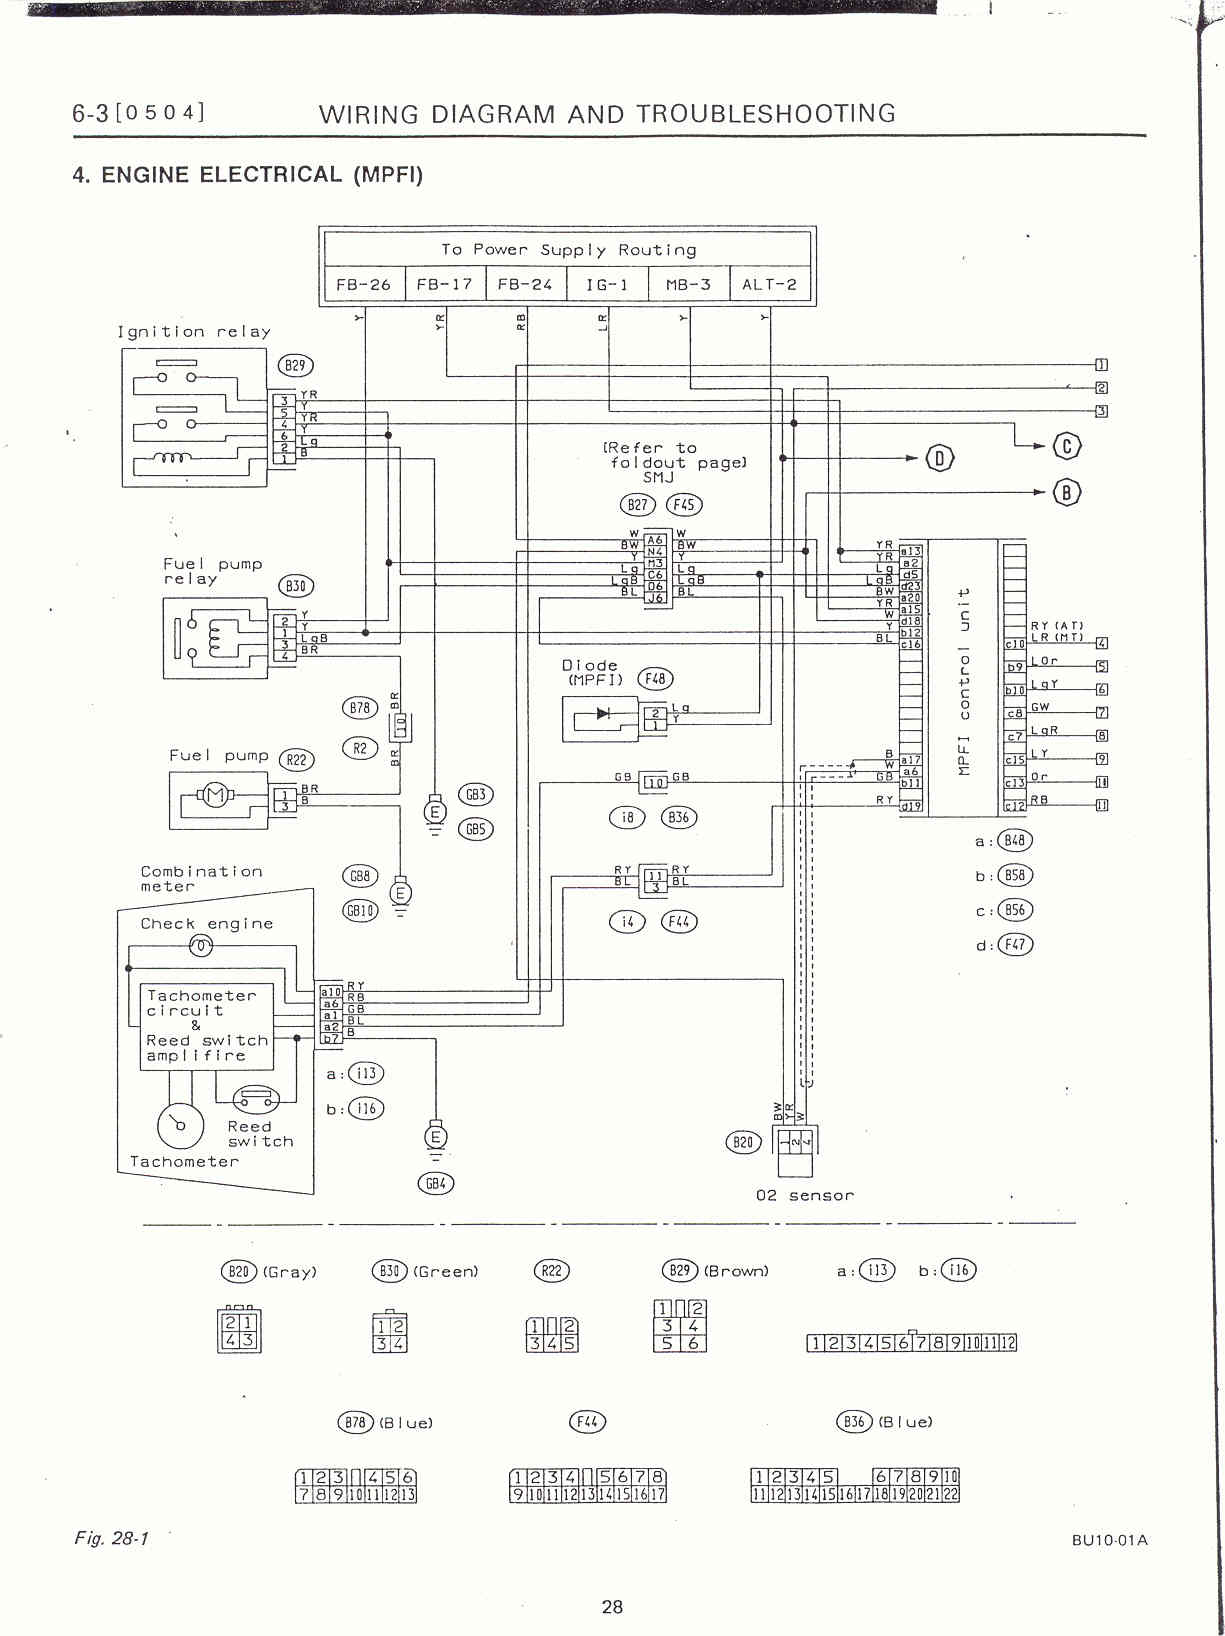 subaru alternator wiring diagram hecho - air pressure gauge wiring diagram  for wiring diagram schematics  wiring diagram schematics